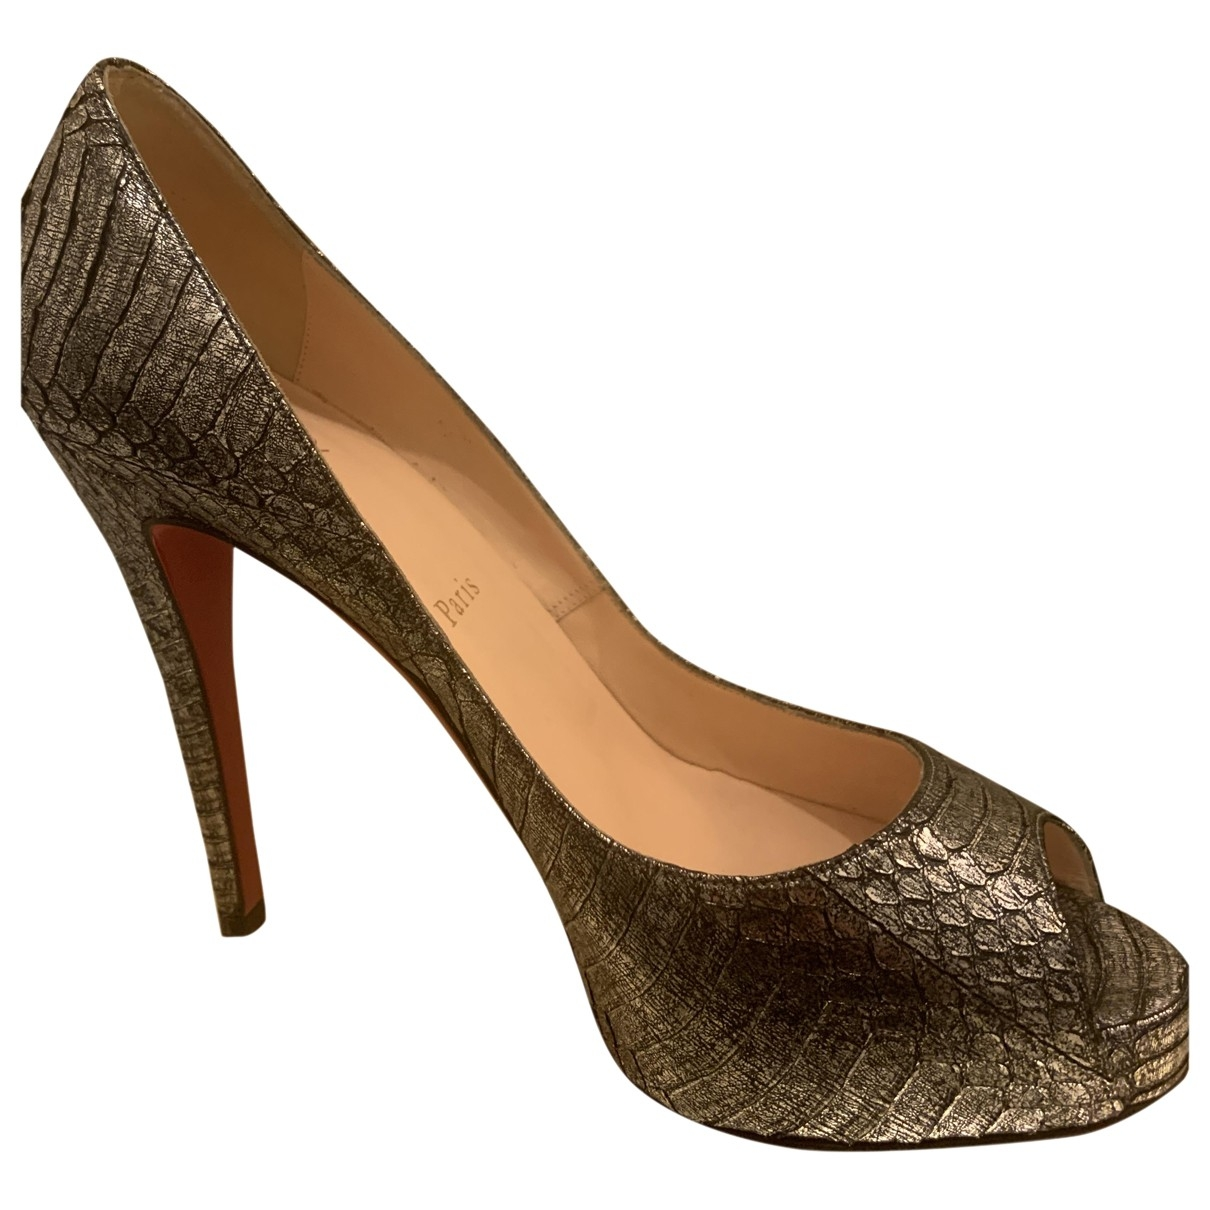 Tacones Very Prive Christian Louboutin